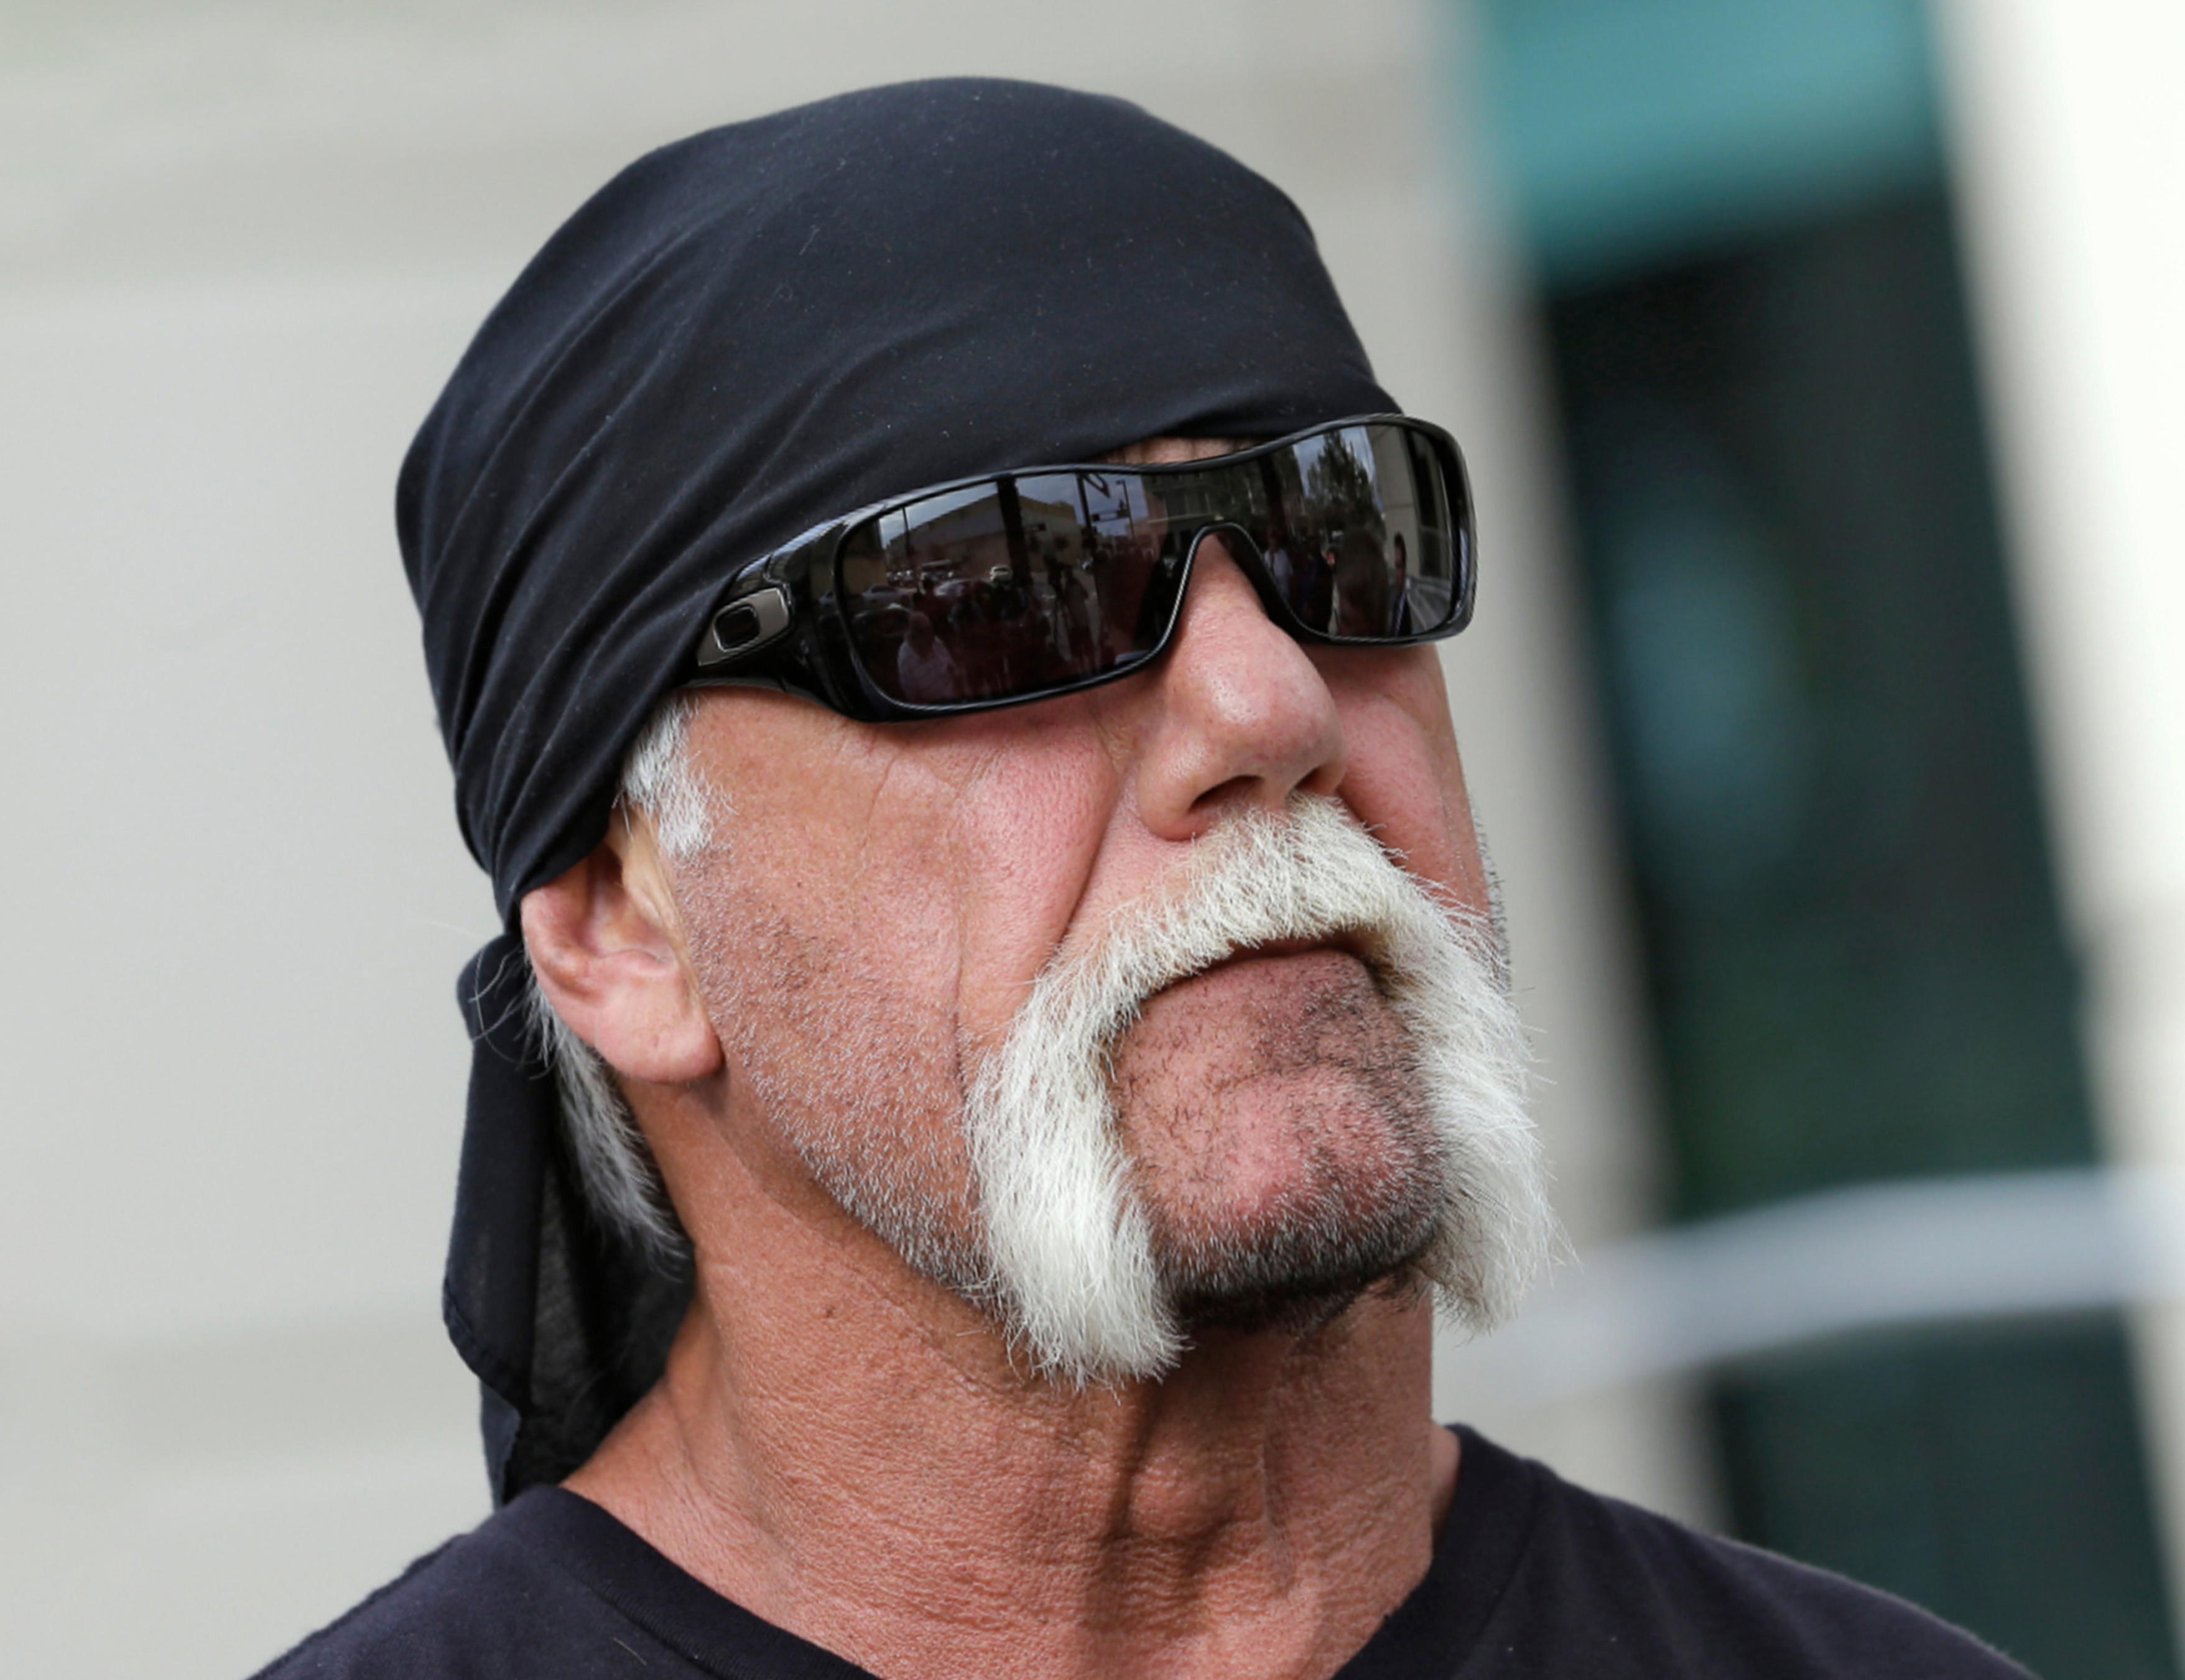 Handlebar mustache in the style of Hulk Hogan.